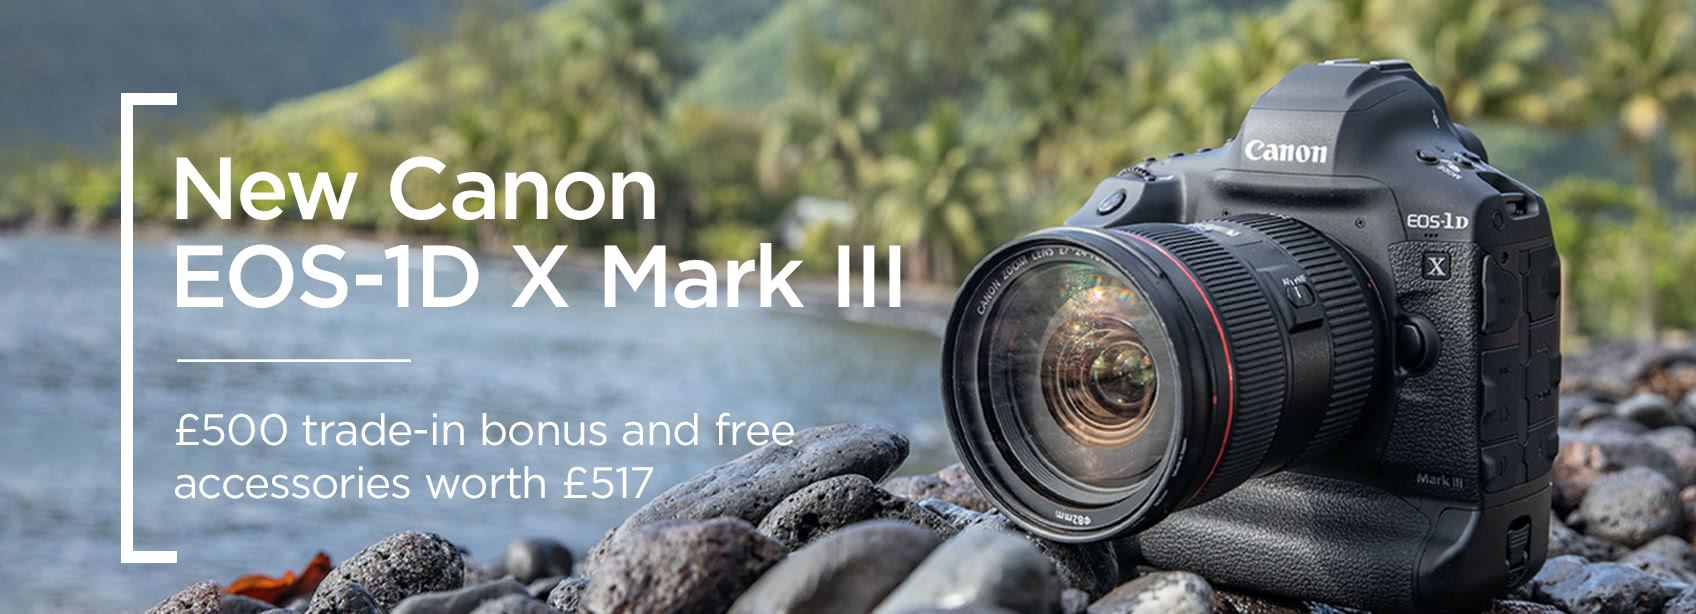 New Canon EOS-1D X Mark III - £500 trade-in bonus plus free accessories worth £517